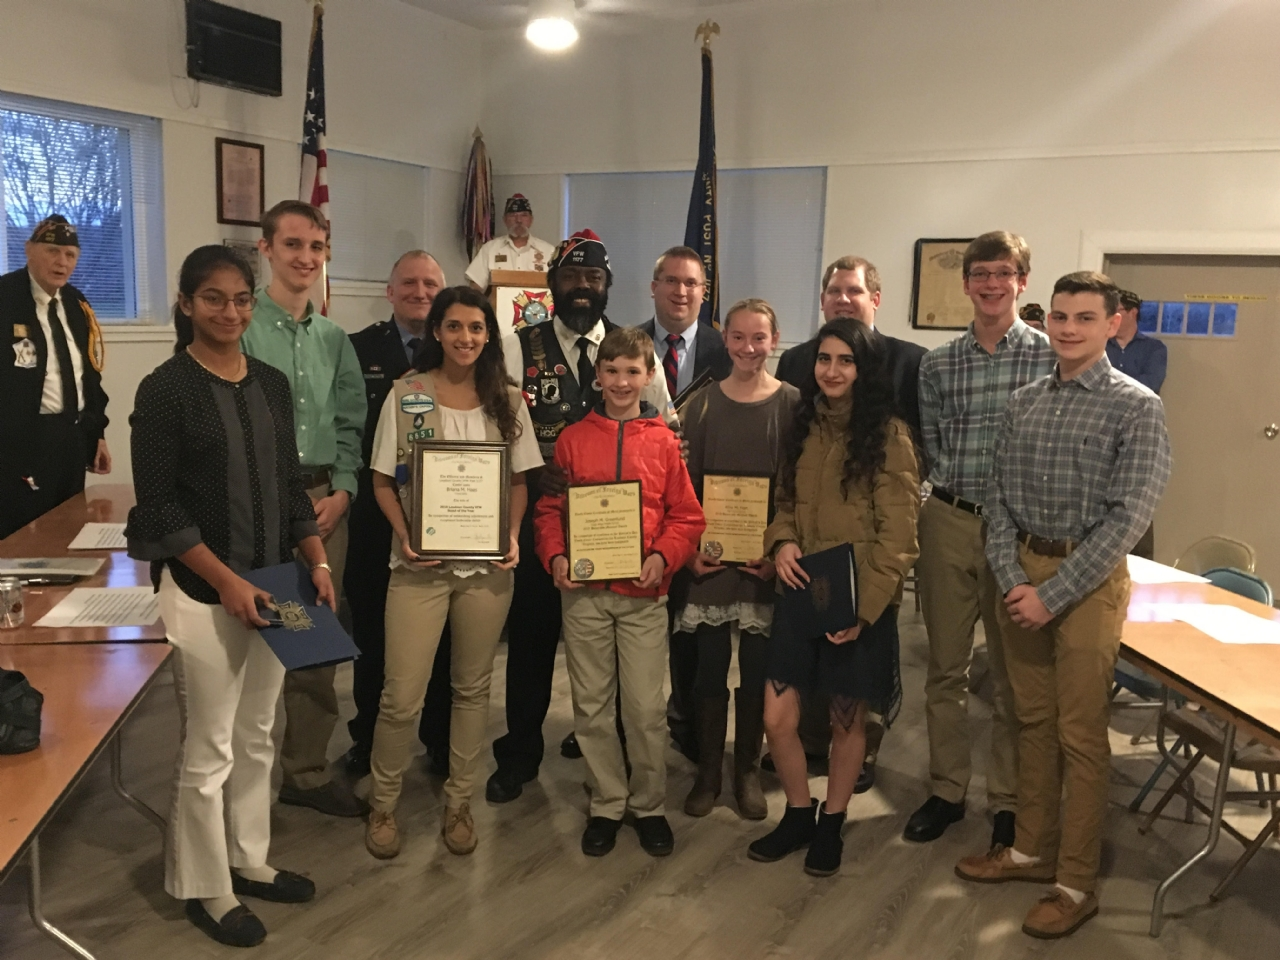 The 2017 Voice of Democracy and Patriots Pen winners along with Emergency Response Person of the Year, Law Enforcement Officer of the Year and Teacher of the Year.